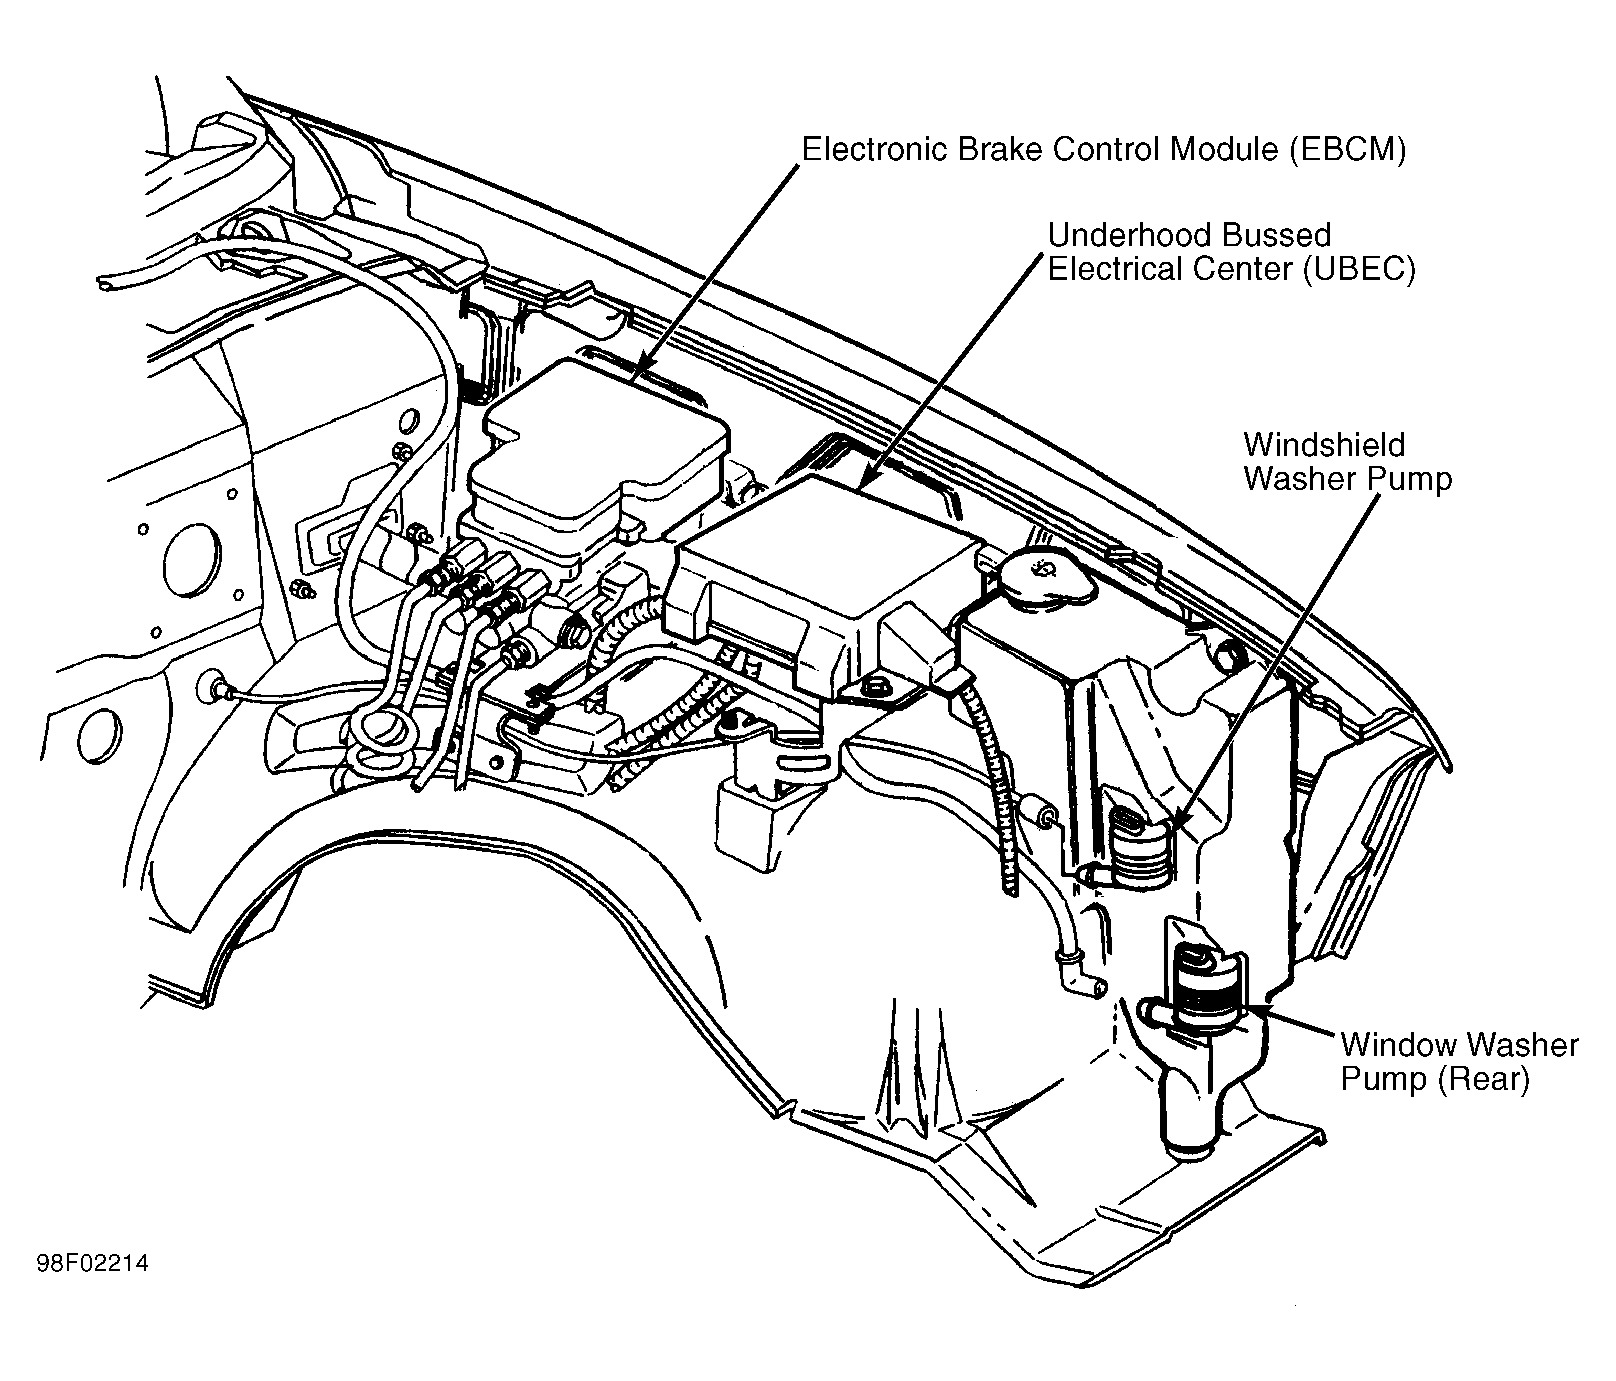 1998 Gmc Sierra Fuse Box Diagram Wiring Library Schematic